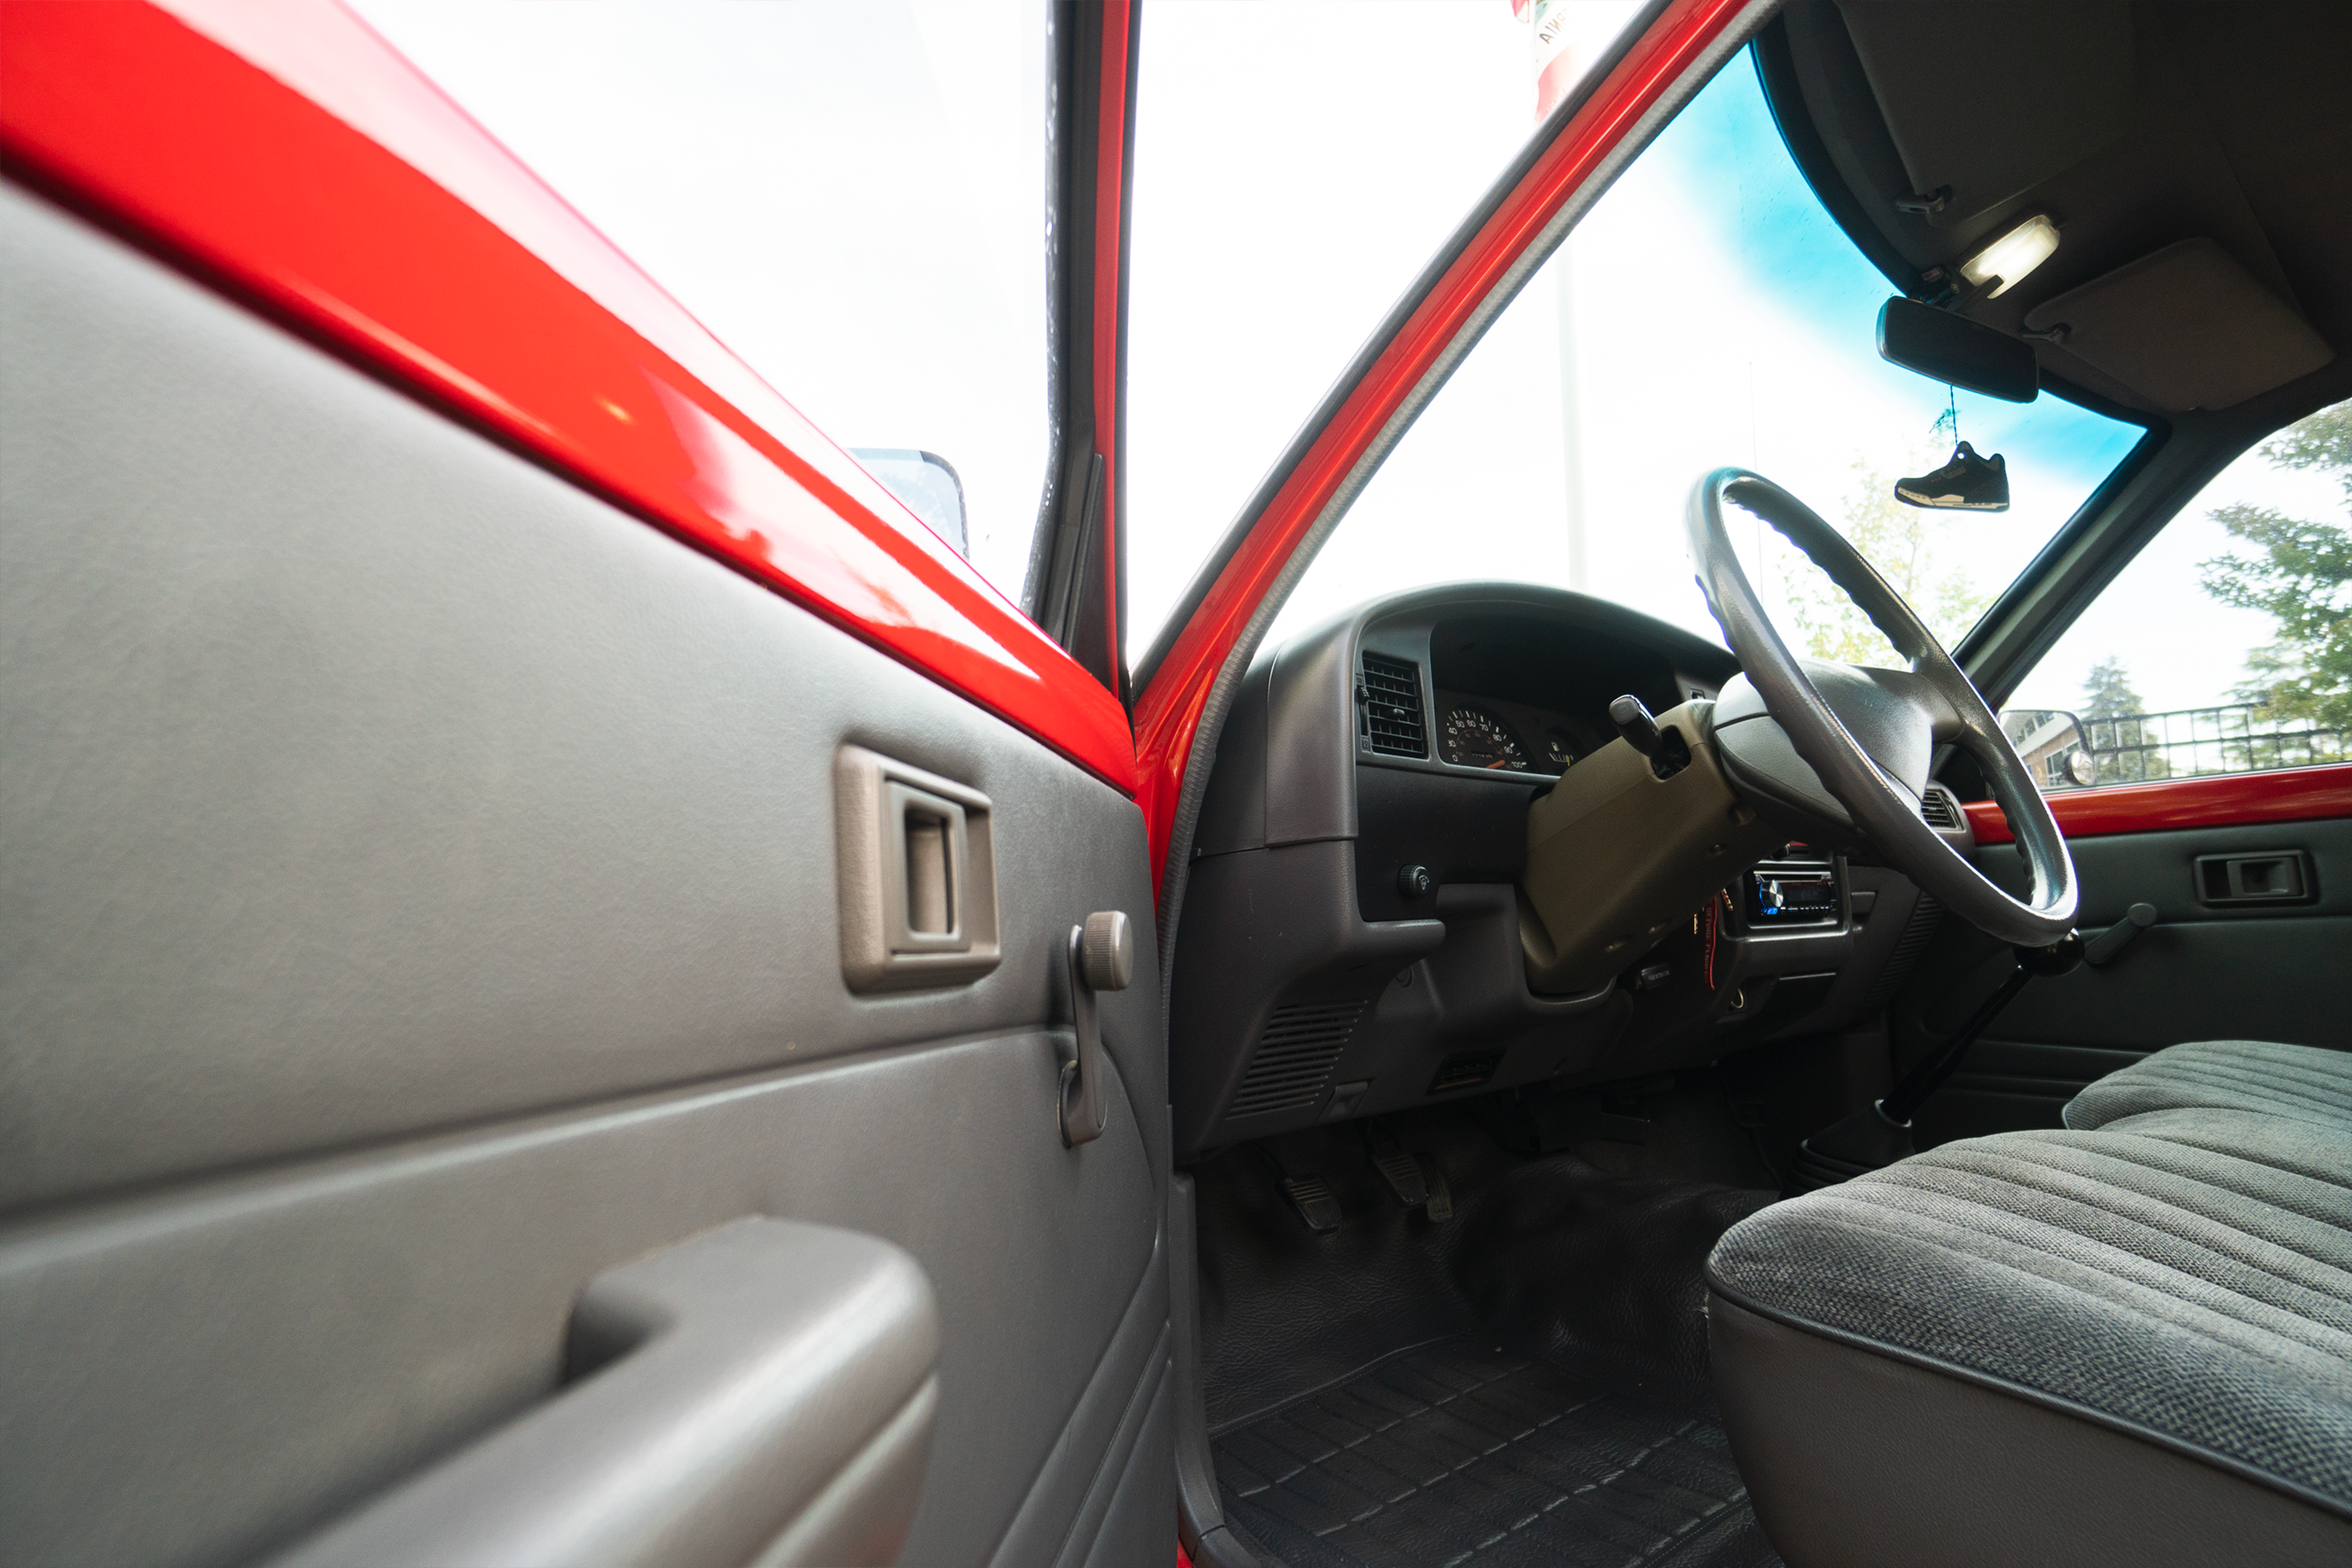 1991Toyota_Red_2wd_Hobo_5.png